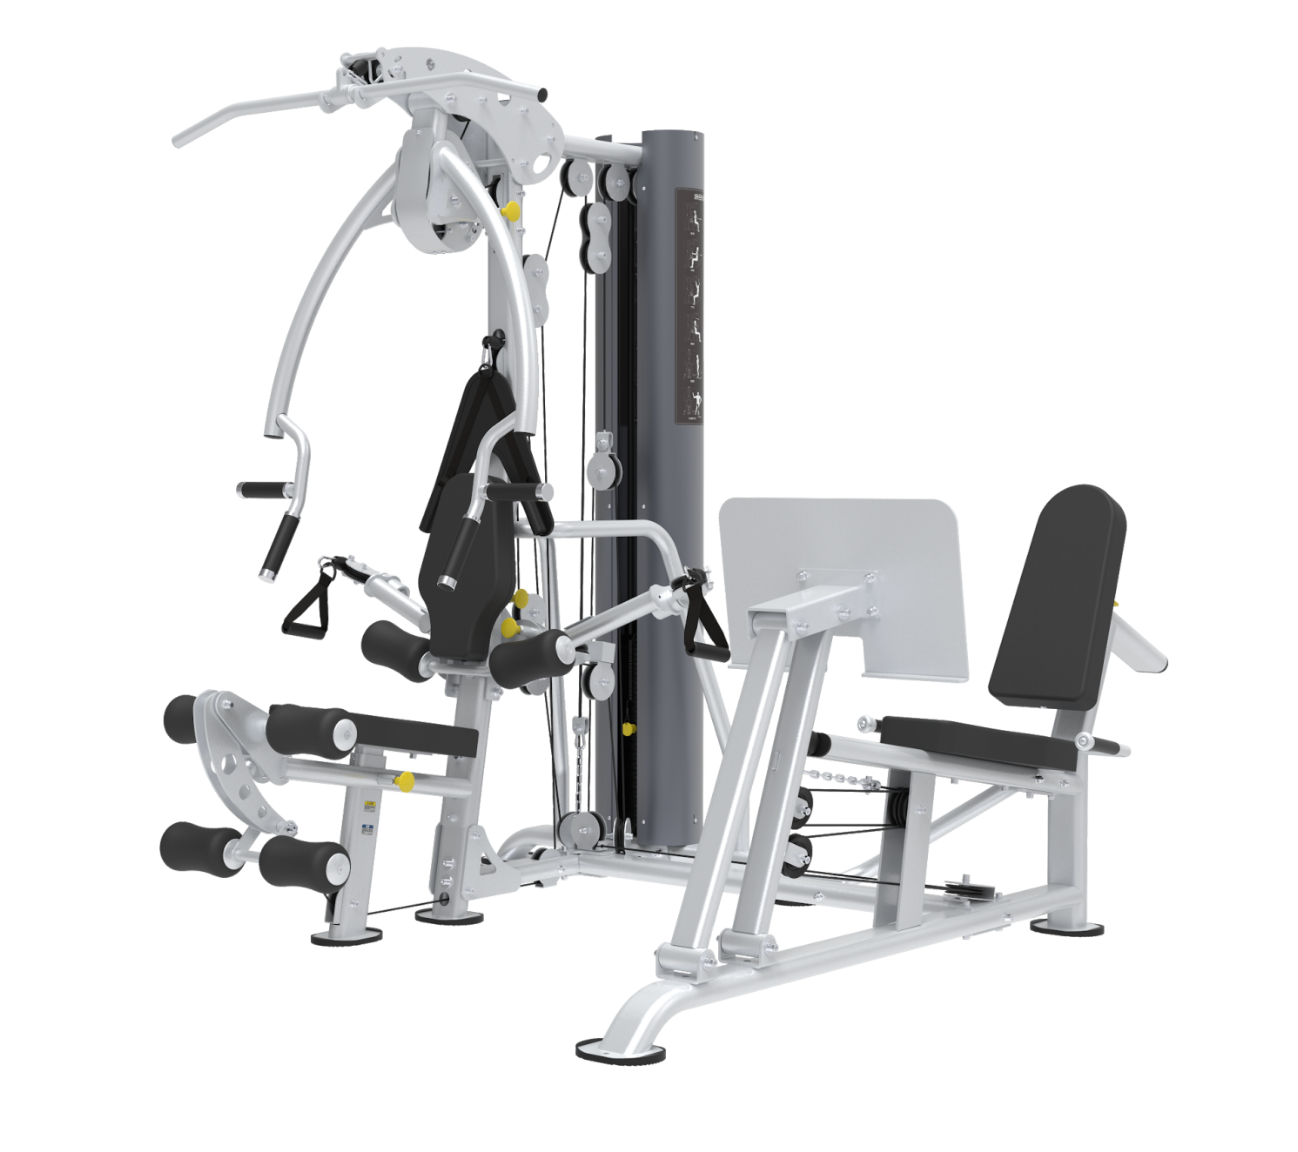 XPT Commercial Multi-Station Gym with Dual Adjustable Pulley and Leg Press